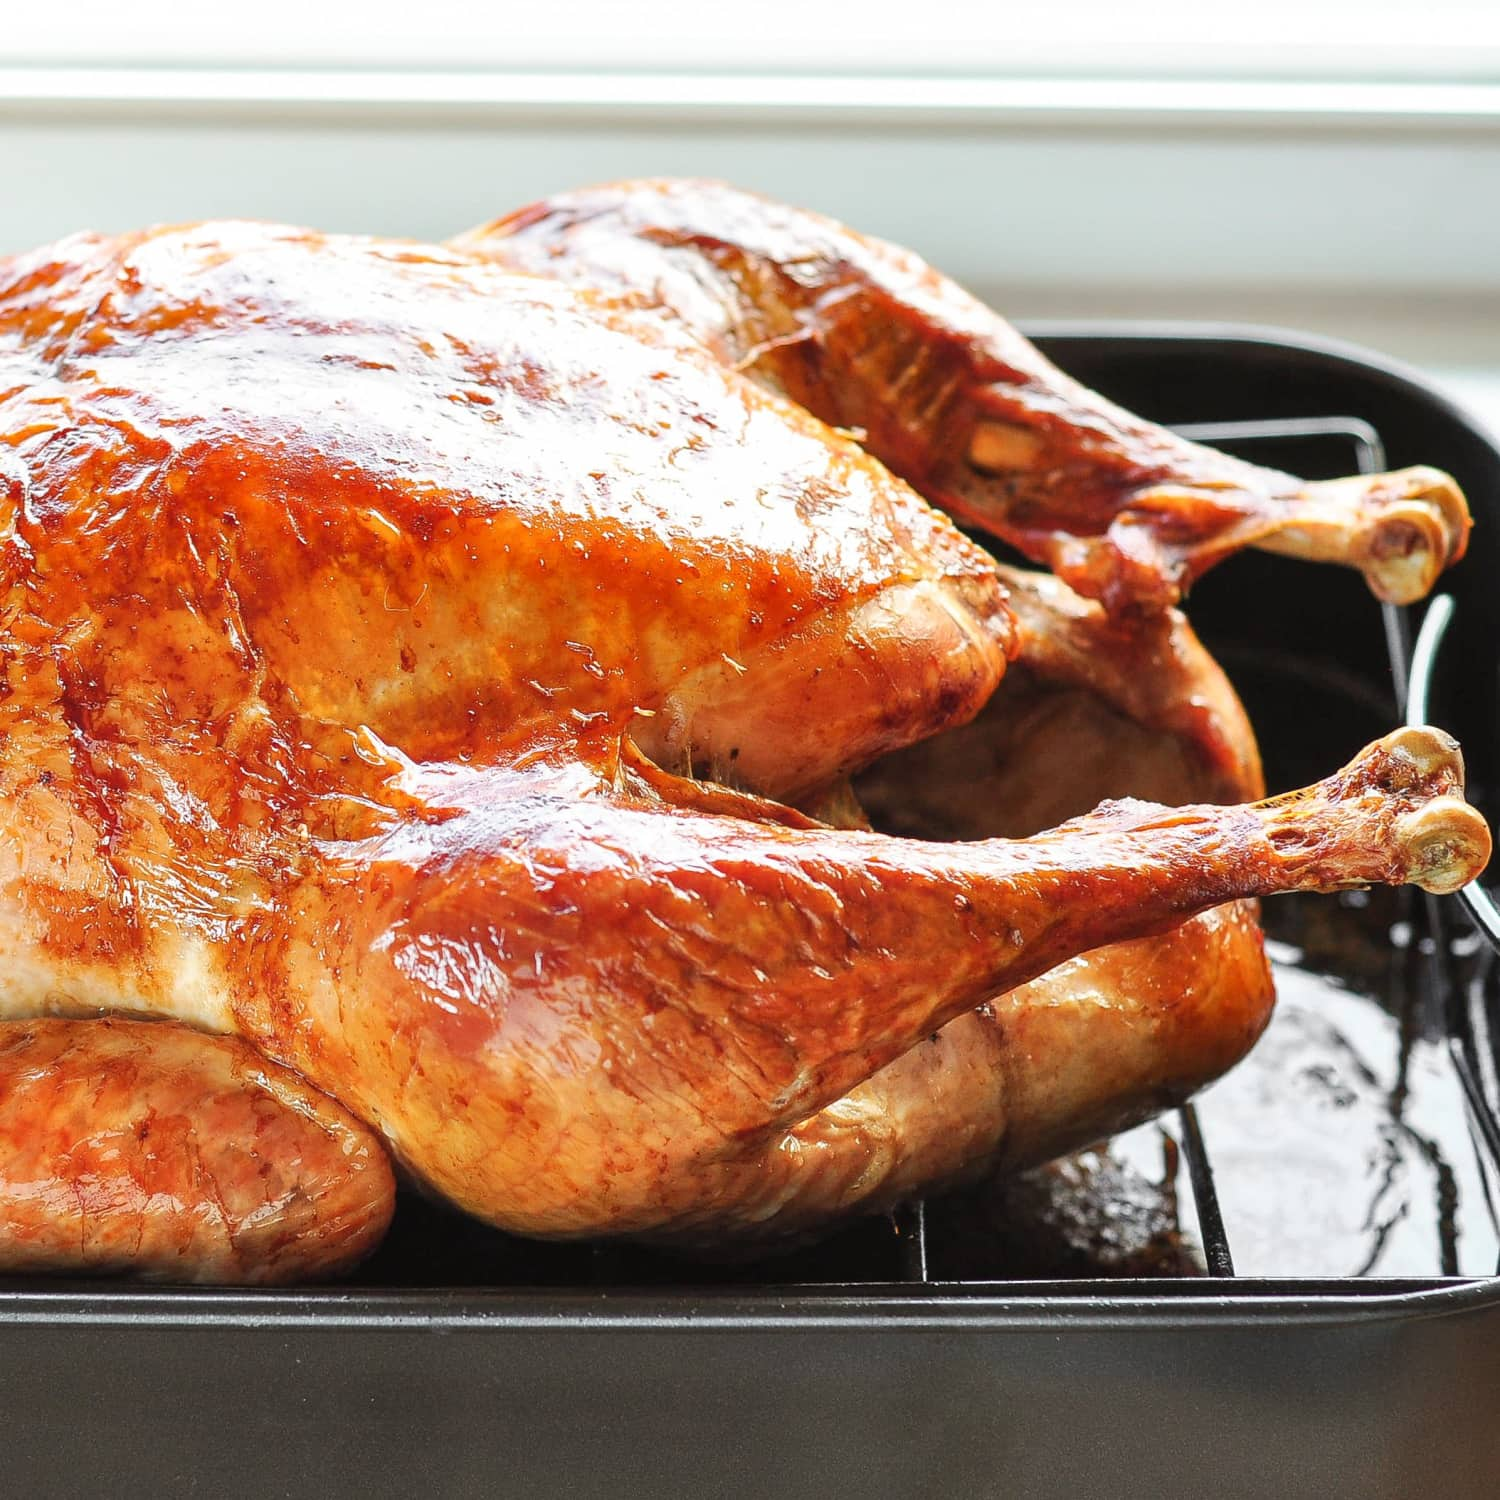 How To Cook a Turkey: The Simplest, Easiest Method